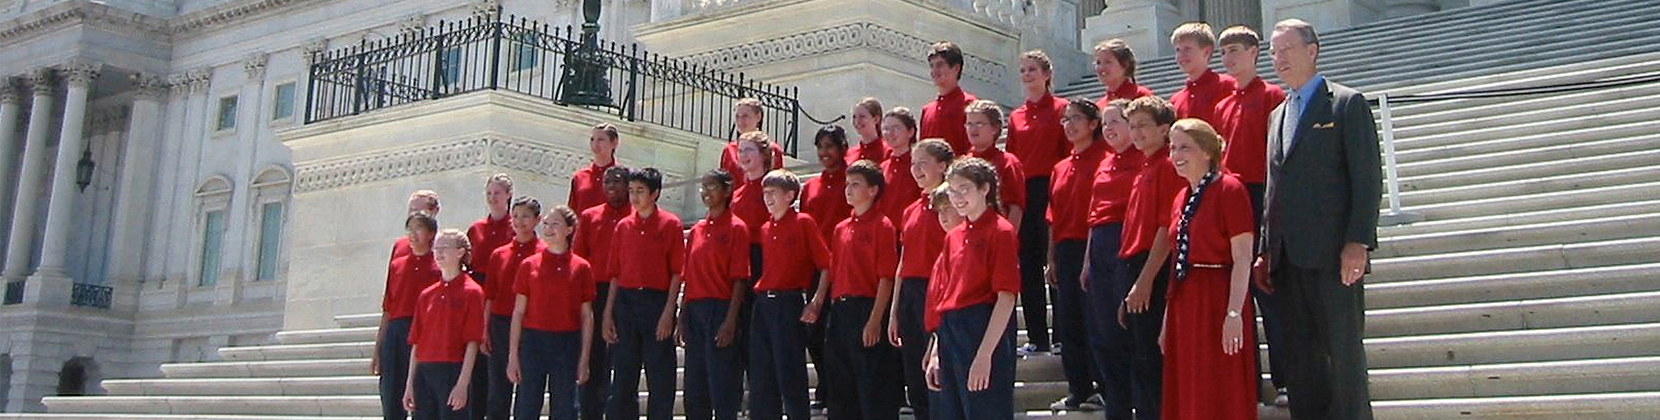 Choir on Steps